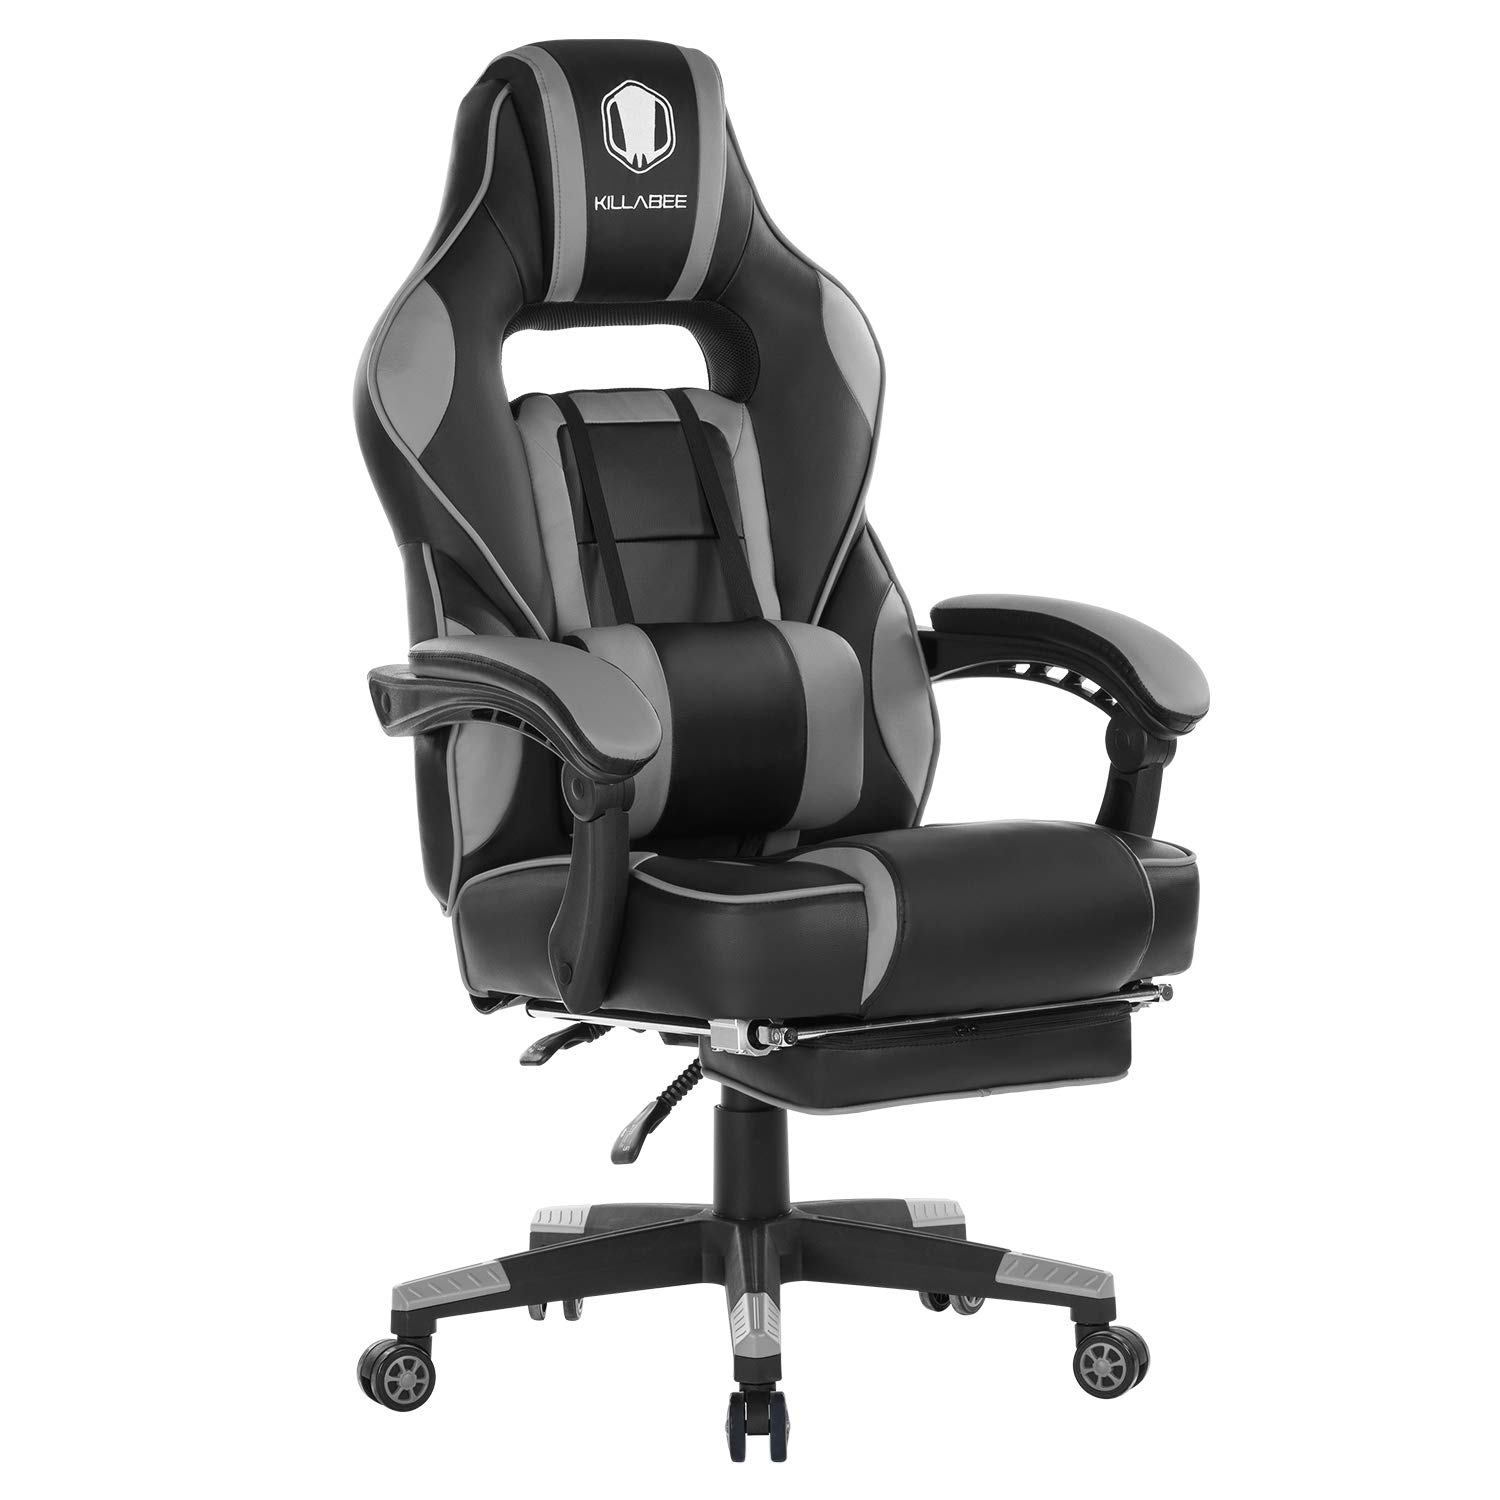 KILLABEE Reclining Memory Foam Racing Gaming Chair - Ergonomic High-Back Racing Computer Desk Office Chair with Retractable Footrest and Adjustable Lumbar Cushion (Gray) by KILLABEE